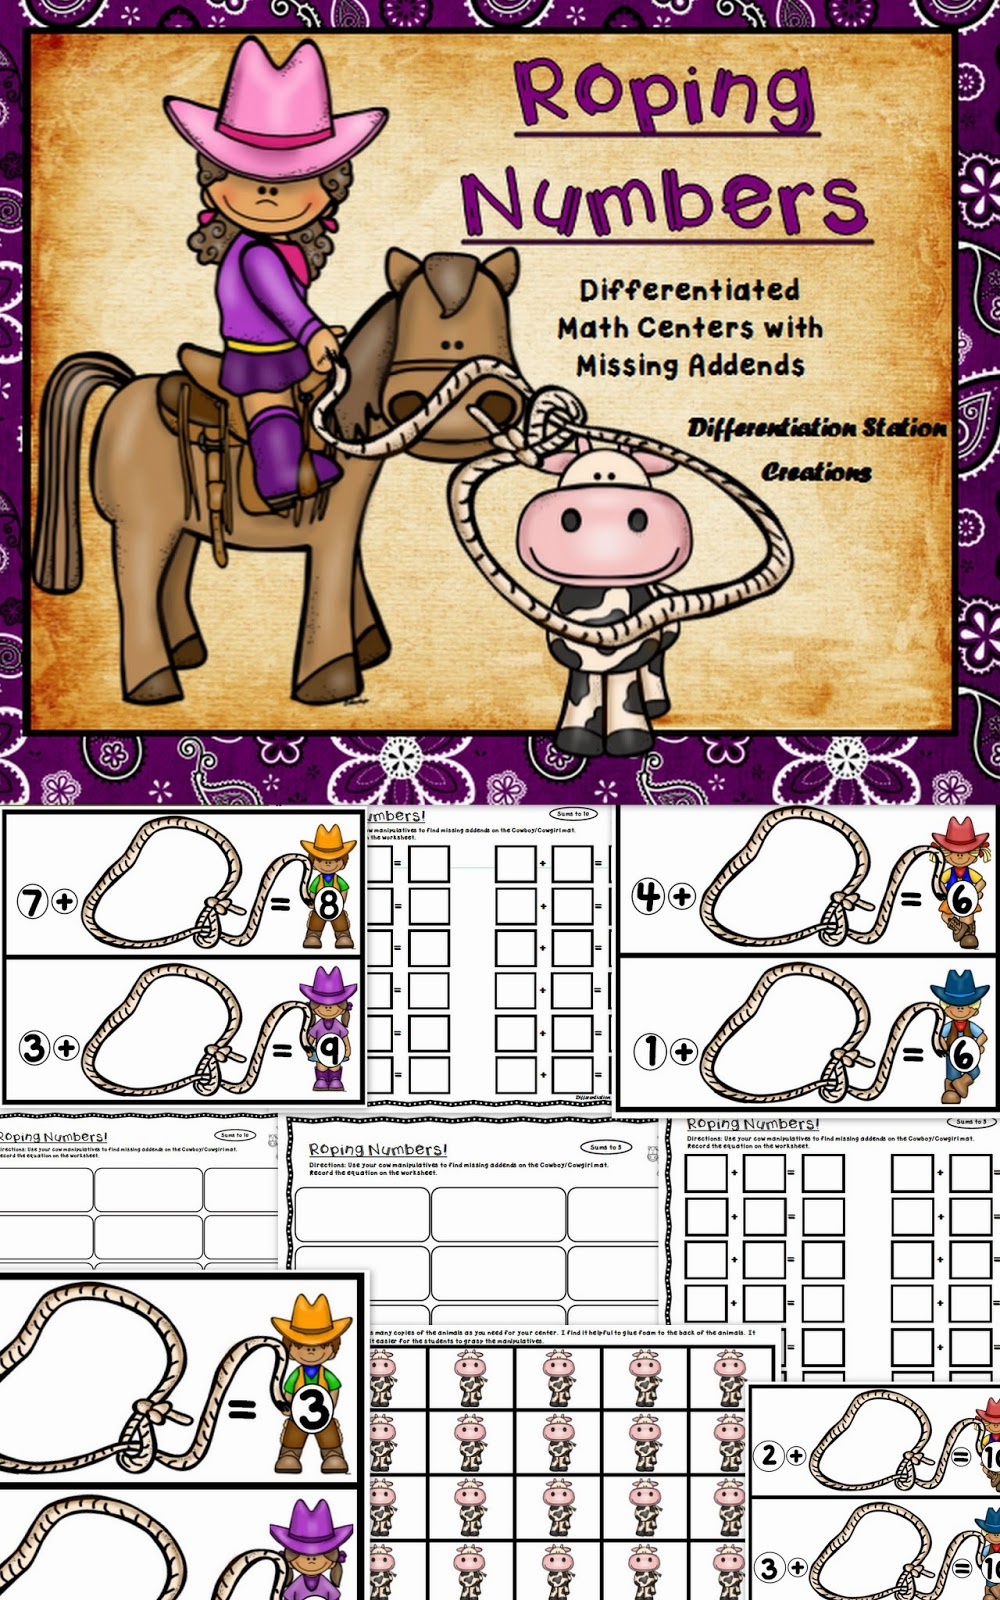 http://www.teacherspayteachers.com/Product/Roping-Numbers-Math-Centers-with-Missing-Addends-Differentiated-1262085